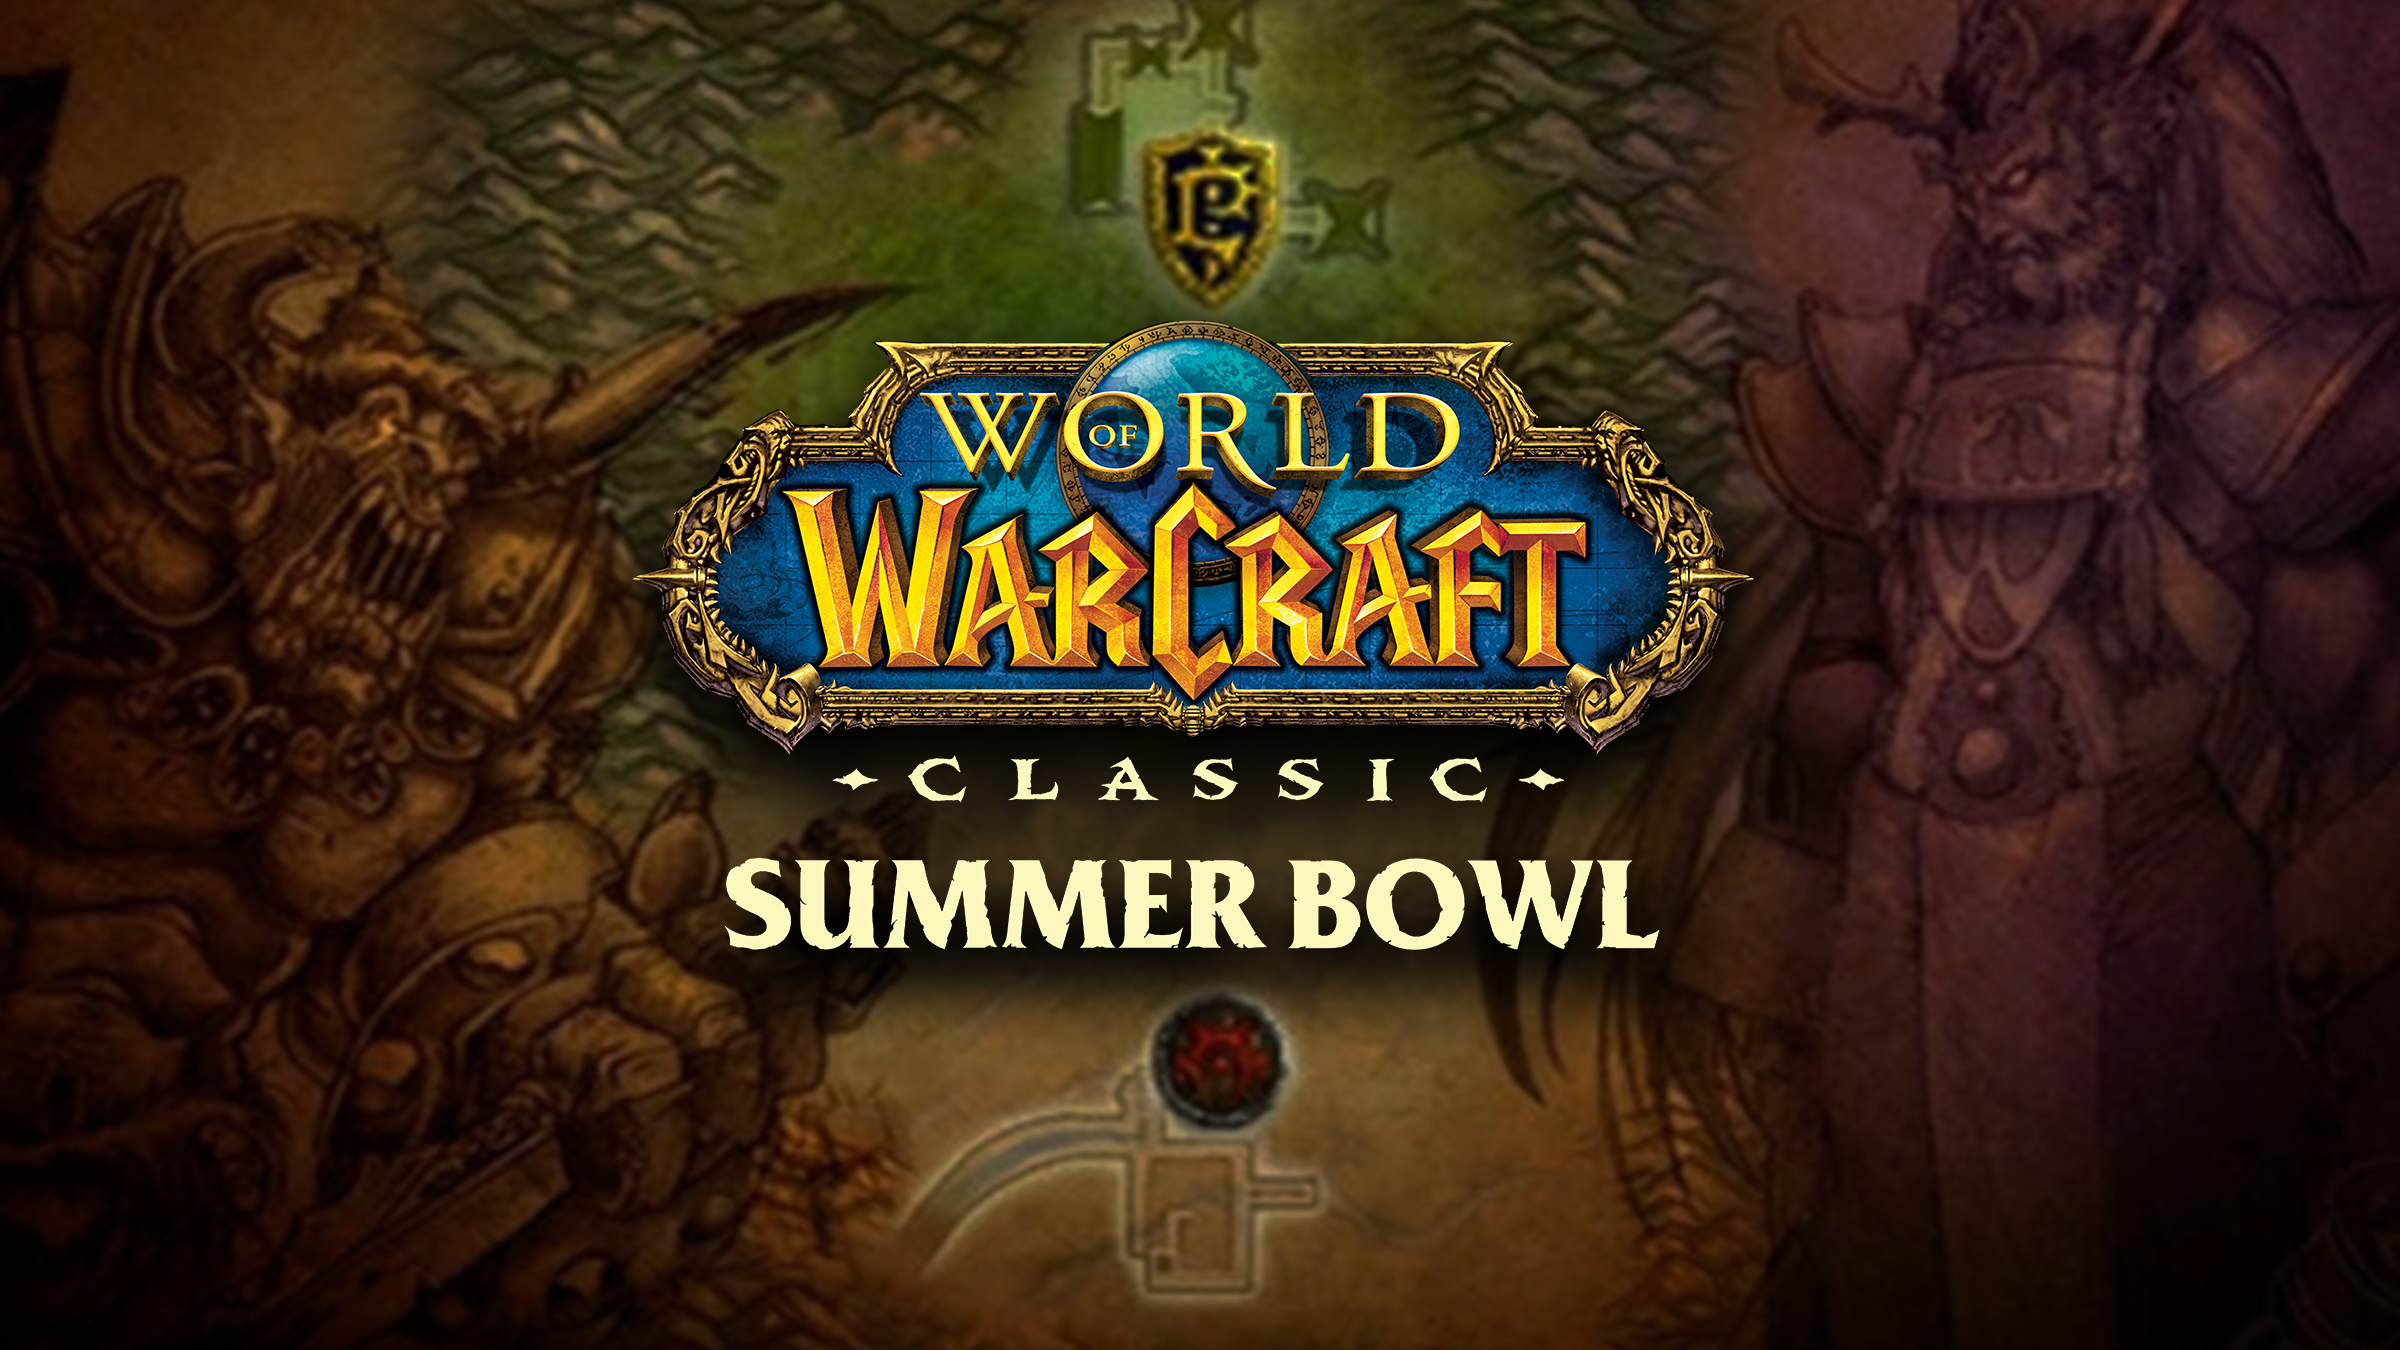 Ecco a voi il World of Warcraft Classic Summer Bowl!